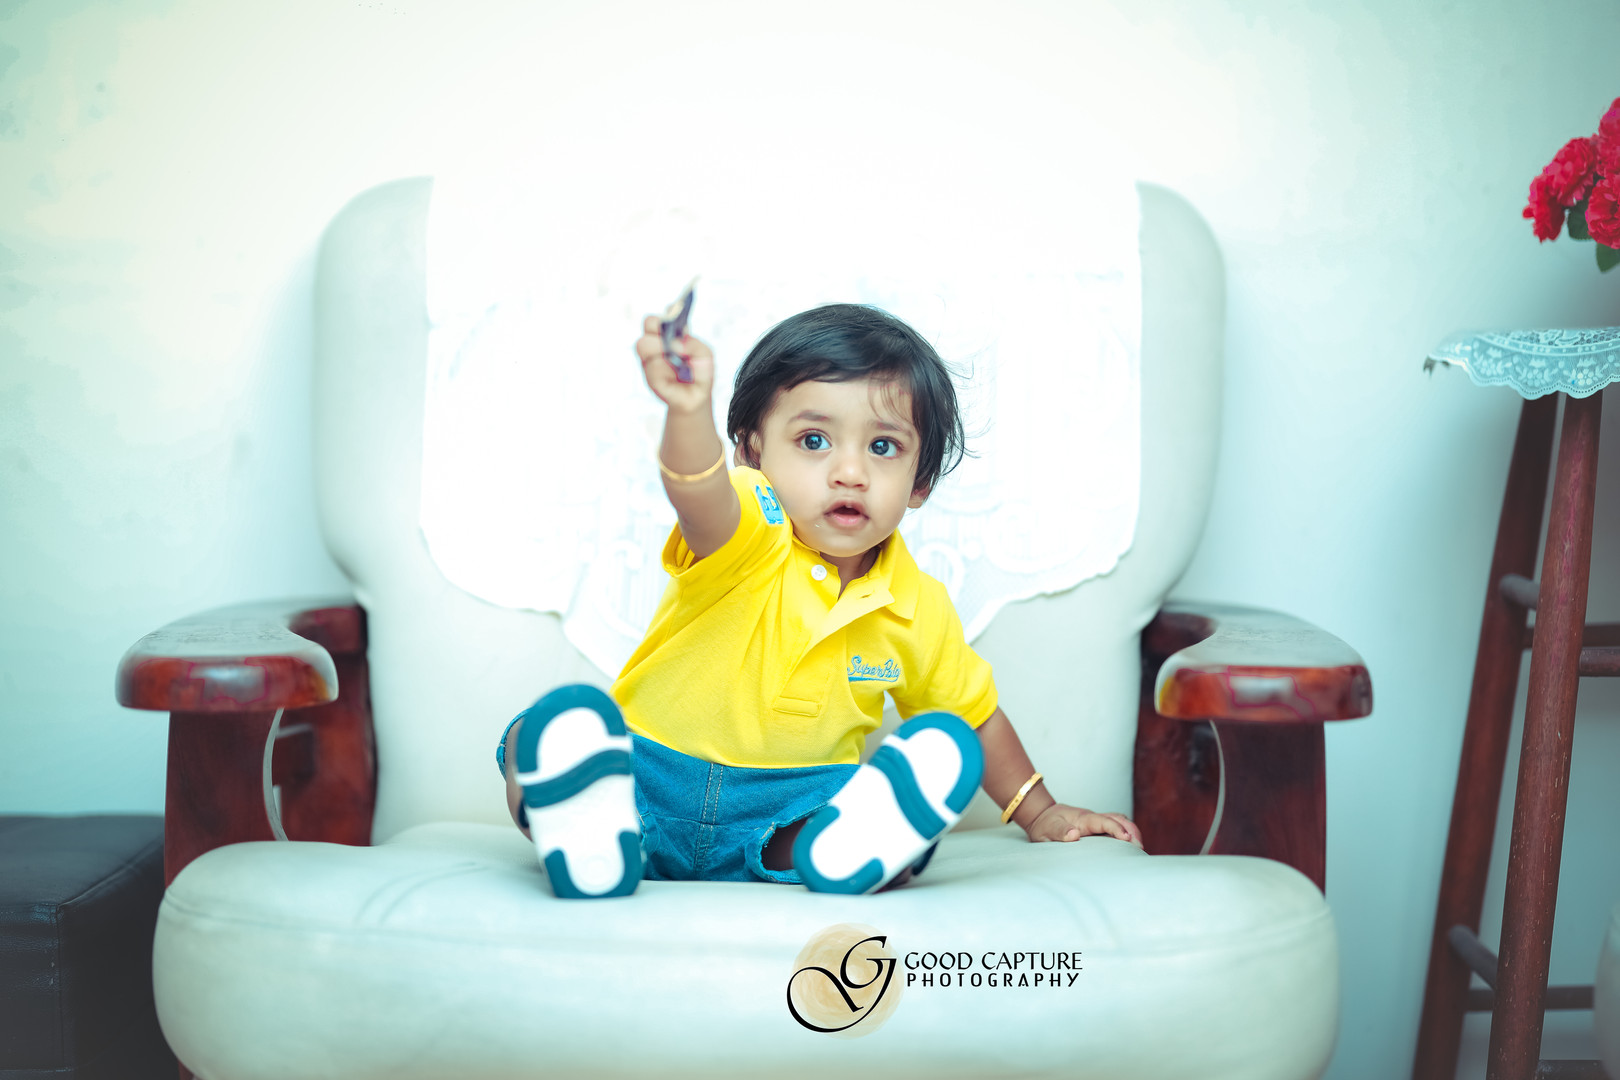 Baby Photoshoot in chennai by Good Capture Photography, best wedding photographers in chennai